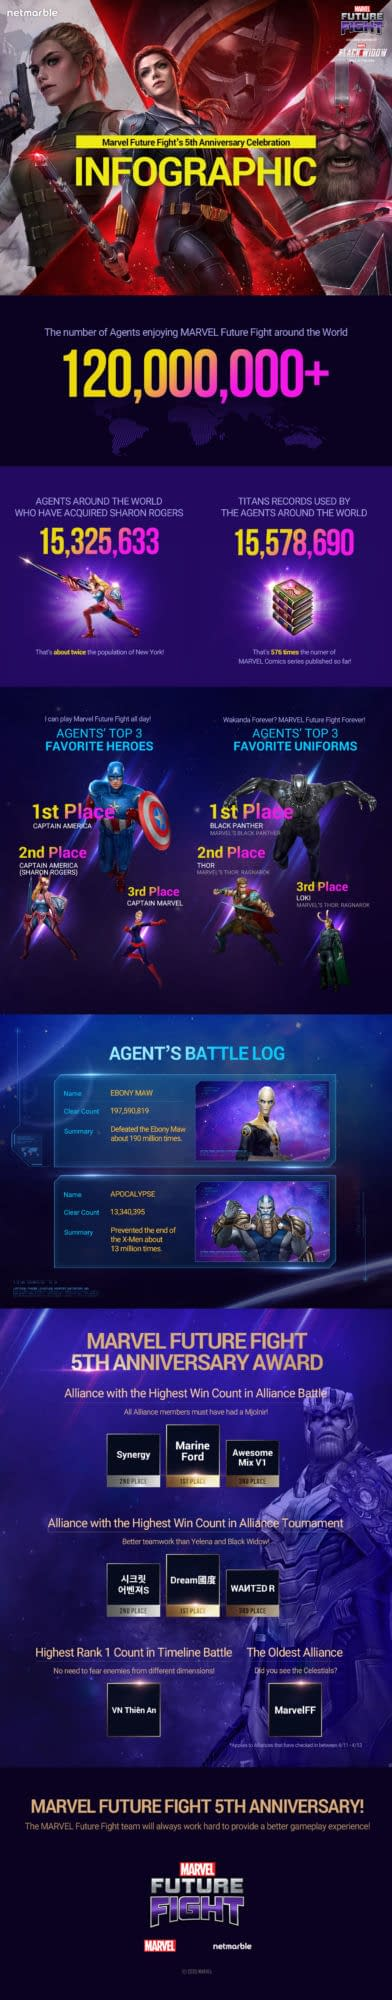 A few stats for Marvel Future Fight, courtesy of Netmarble.